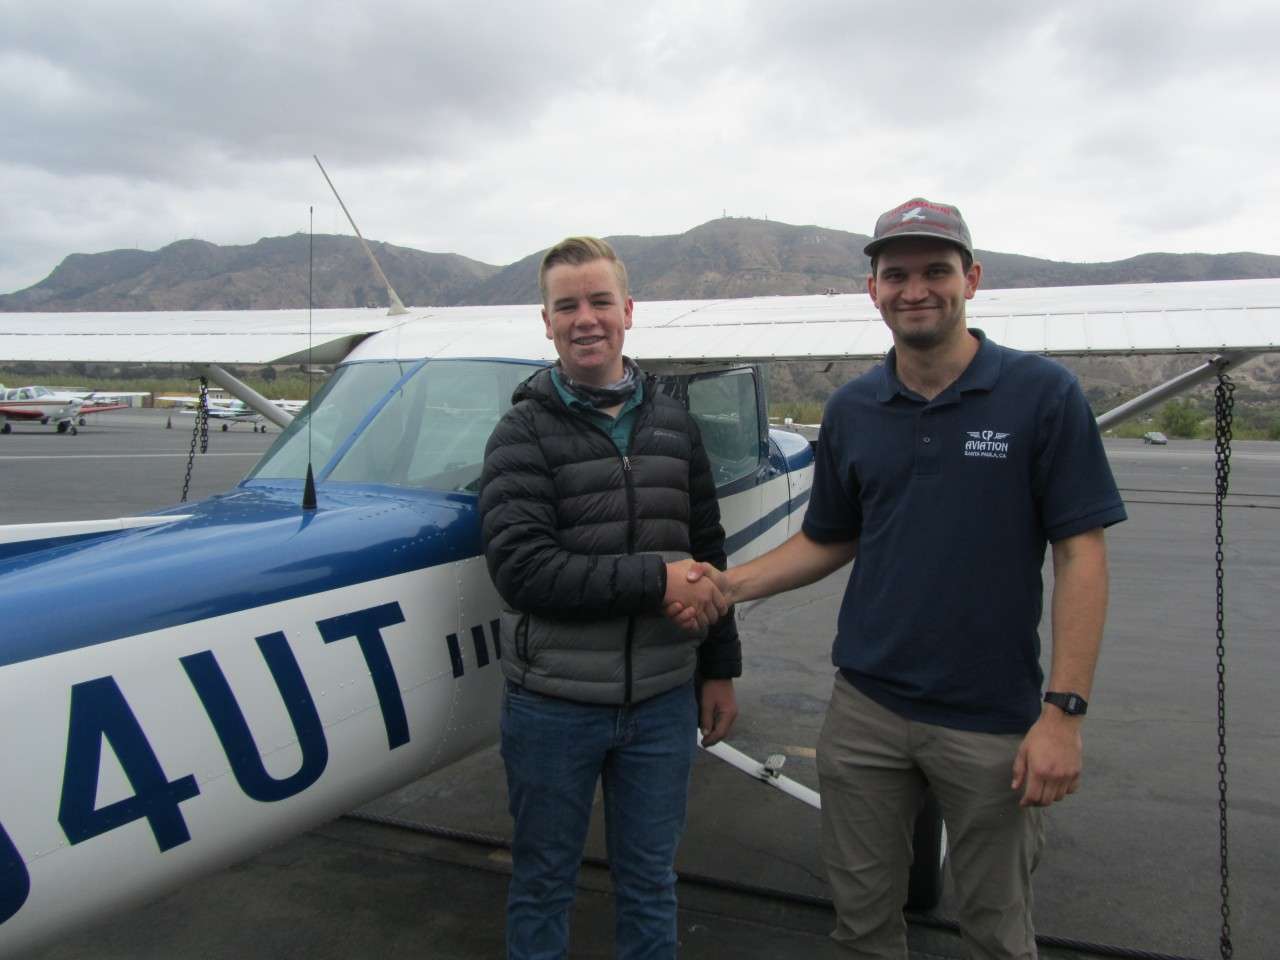 First Solo - Patrick Daly!